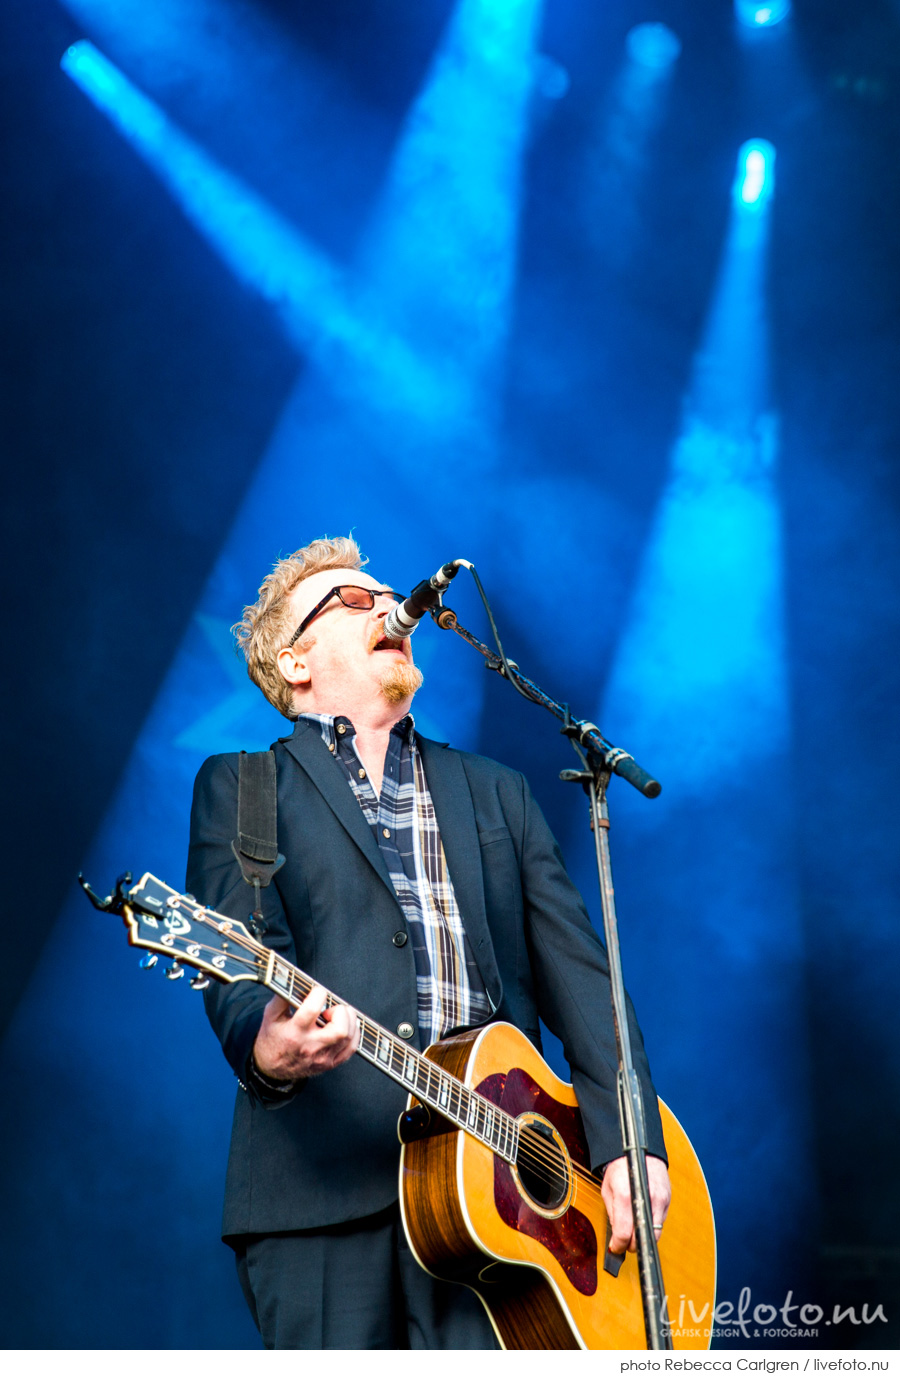 140617-Flogging-Molly-Foto-Rebecca-Carlgren-livefoto-nu-photo--12